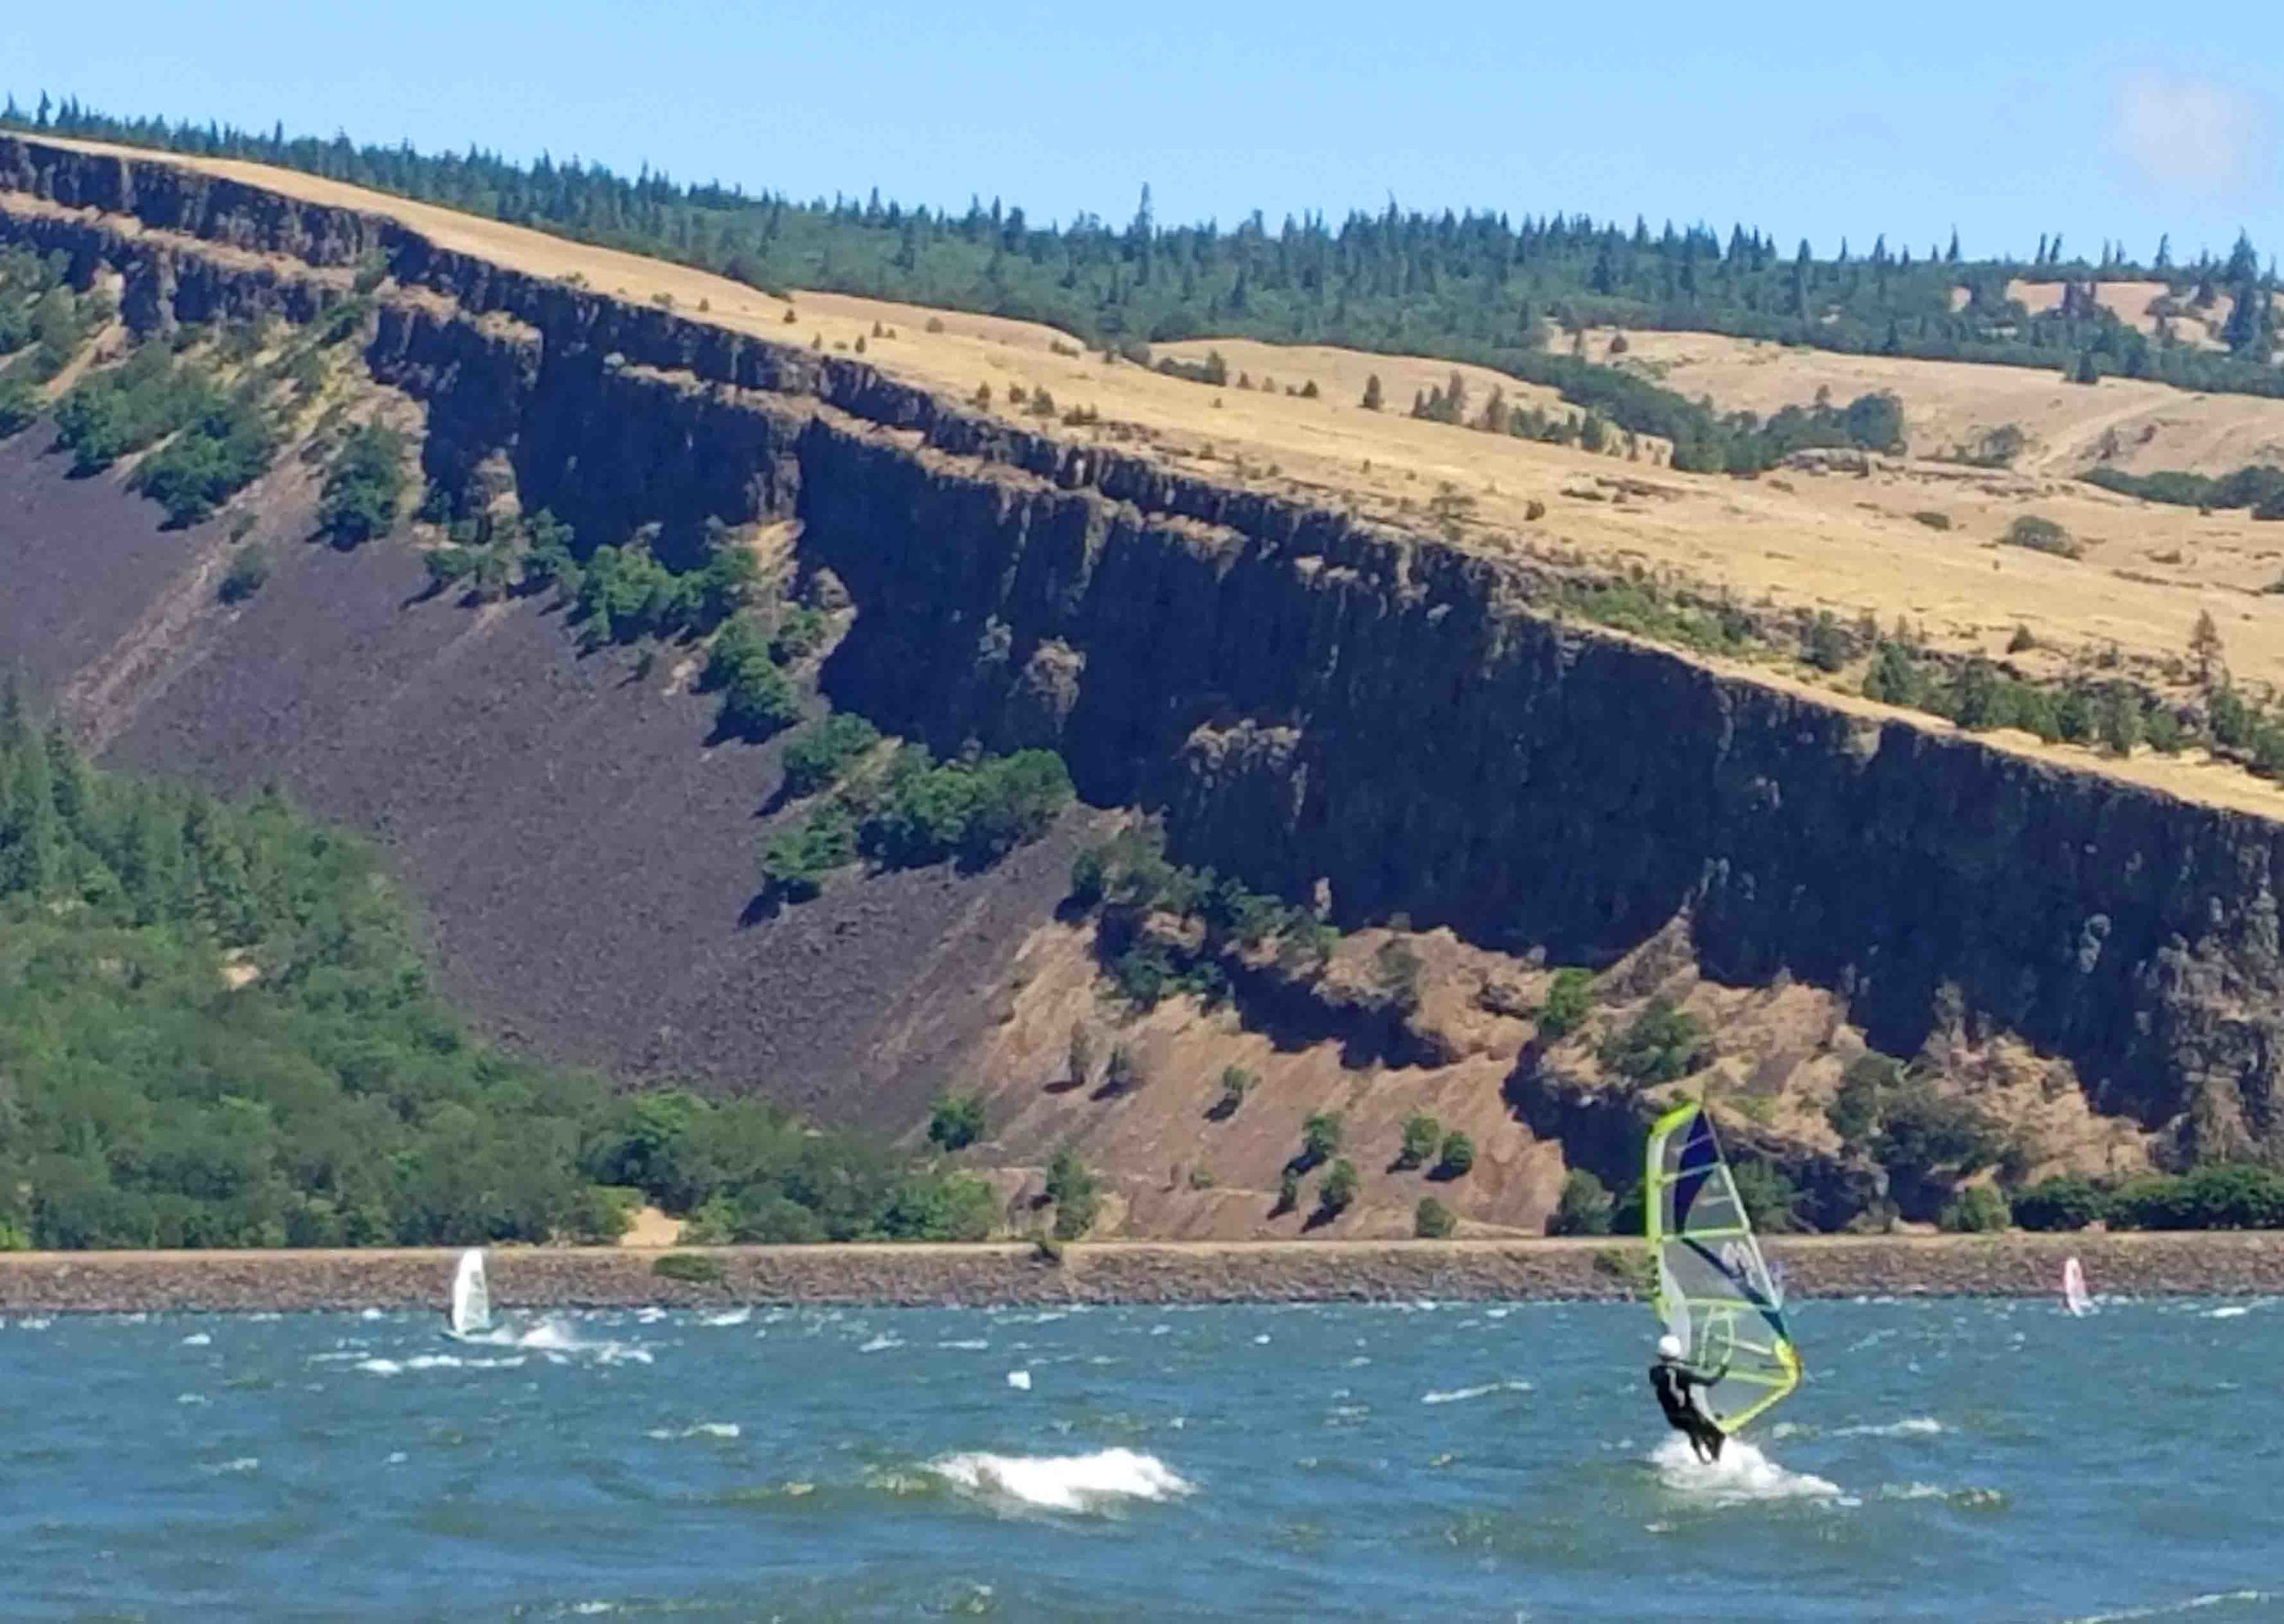 Big Wind day at Mosier's Rock Creek beach. Sailing over powered on a 3.2 last weekend. Wind is too big for Doodle, so he's hanging on shore. Photo: (c) Barb Ayers, DogDiary.org